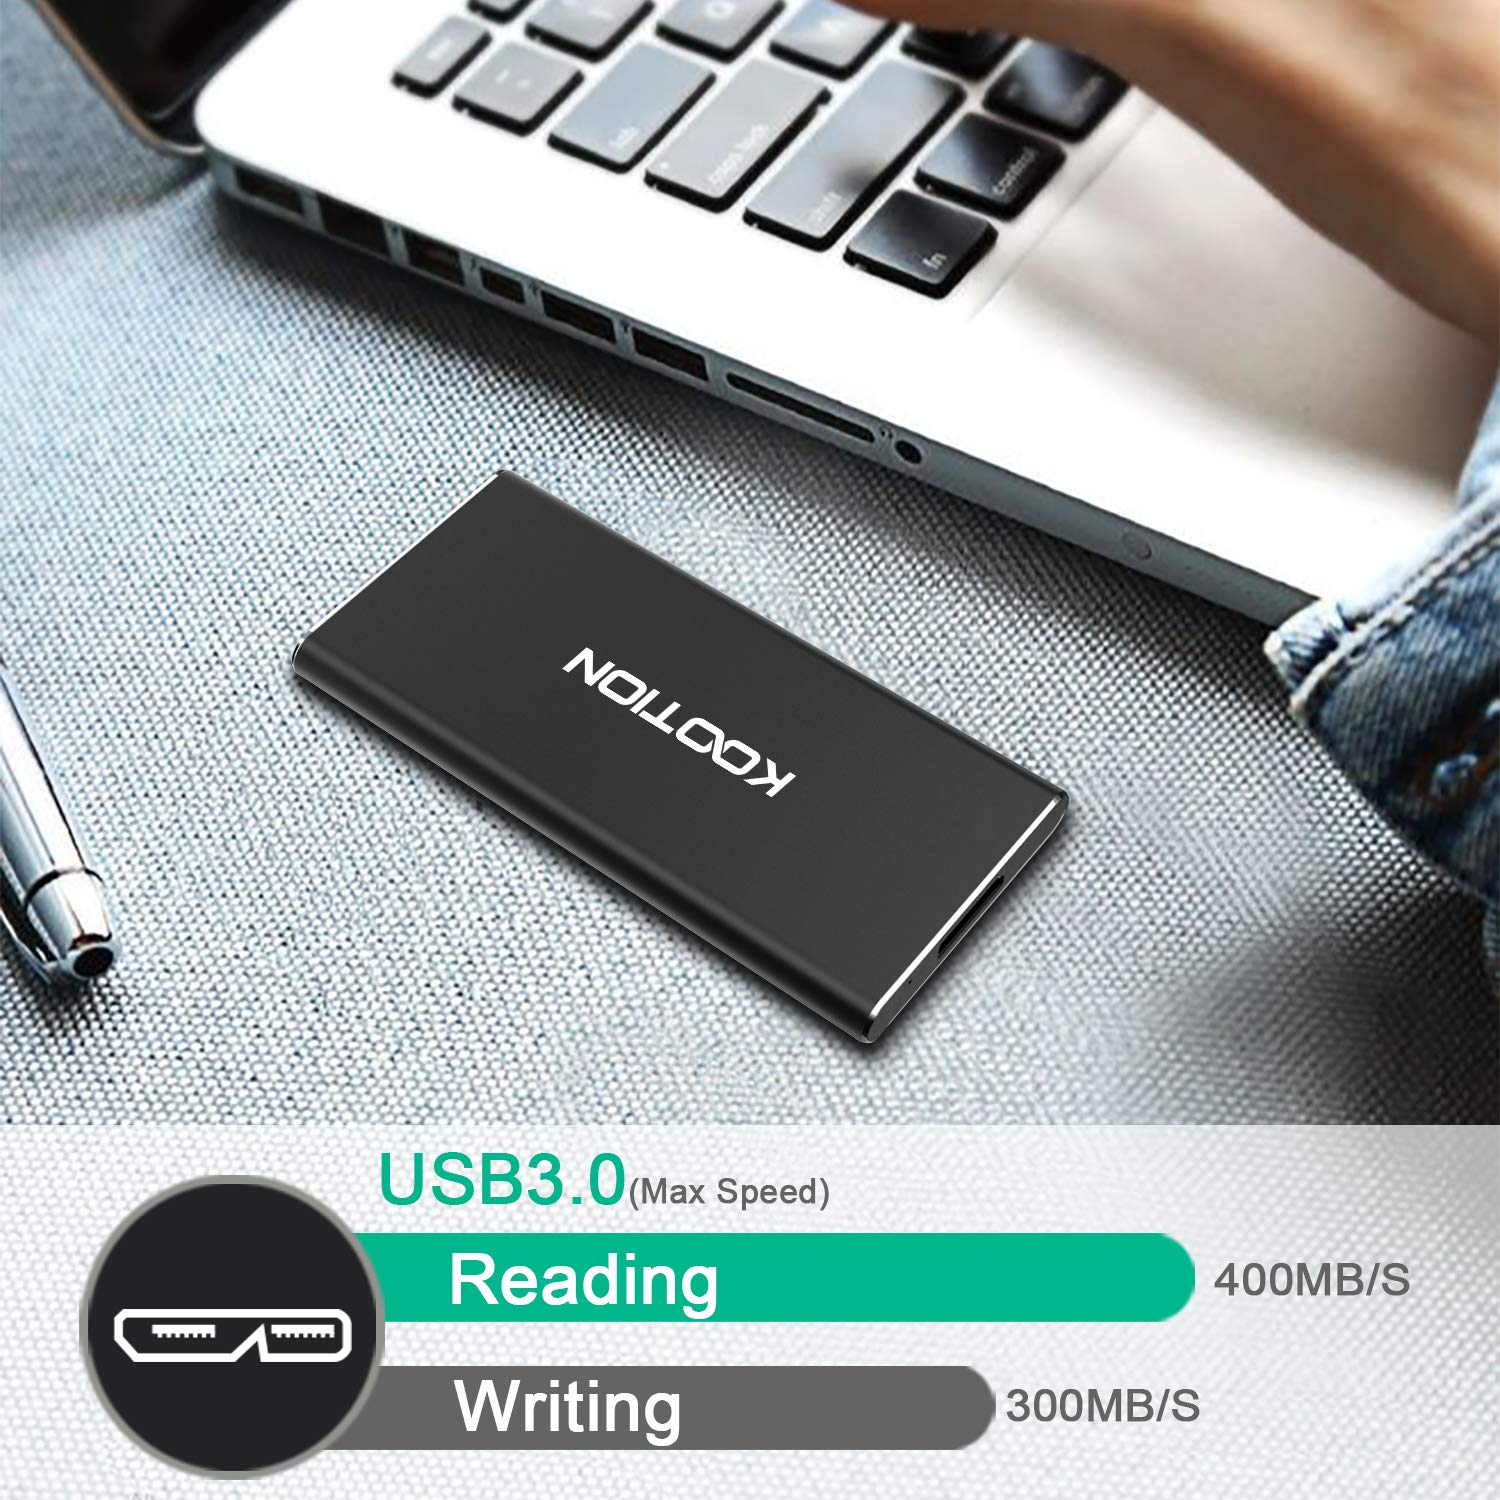 KOOTION 120GB Portable External SSD USB 3.0 High Speed Read & Write up to 400MB/s&300MB/s External Storage Ultra-Slim Solid State Drive for PC, Desktop, Laptop, MacBook by KOOTION (Image #2)